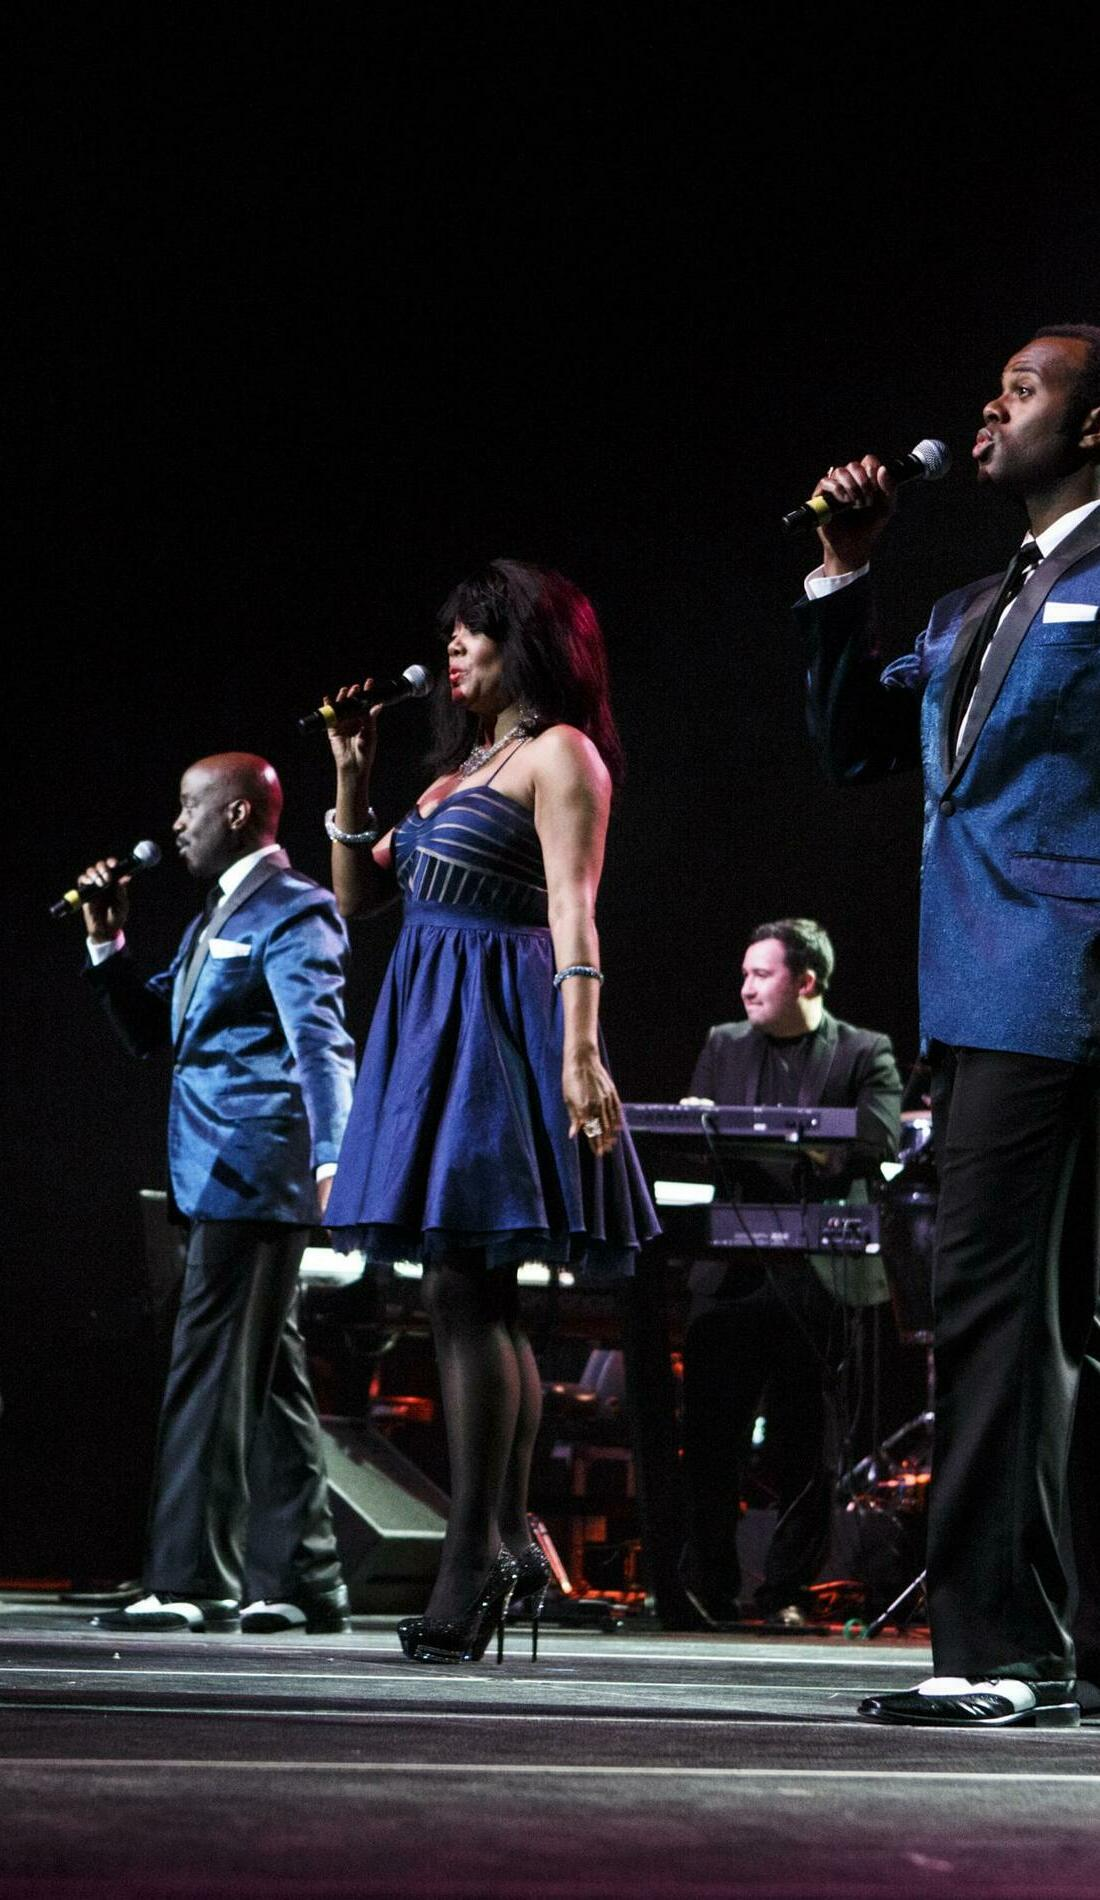 A The Platters live event